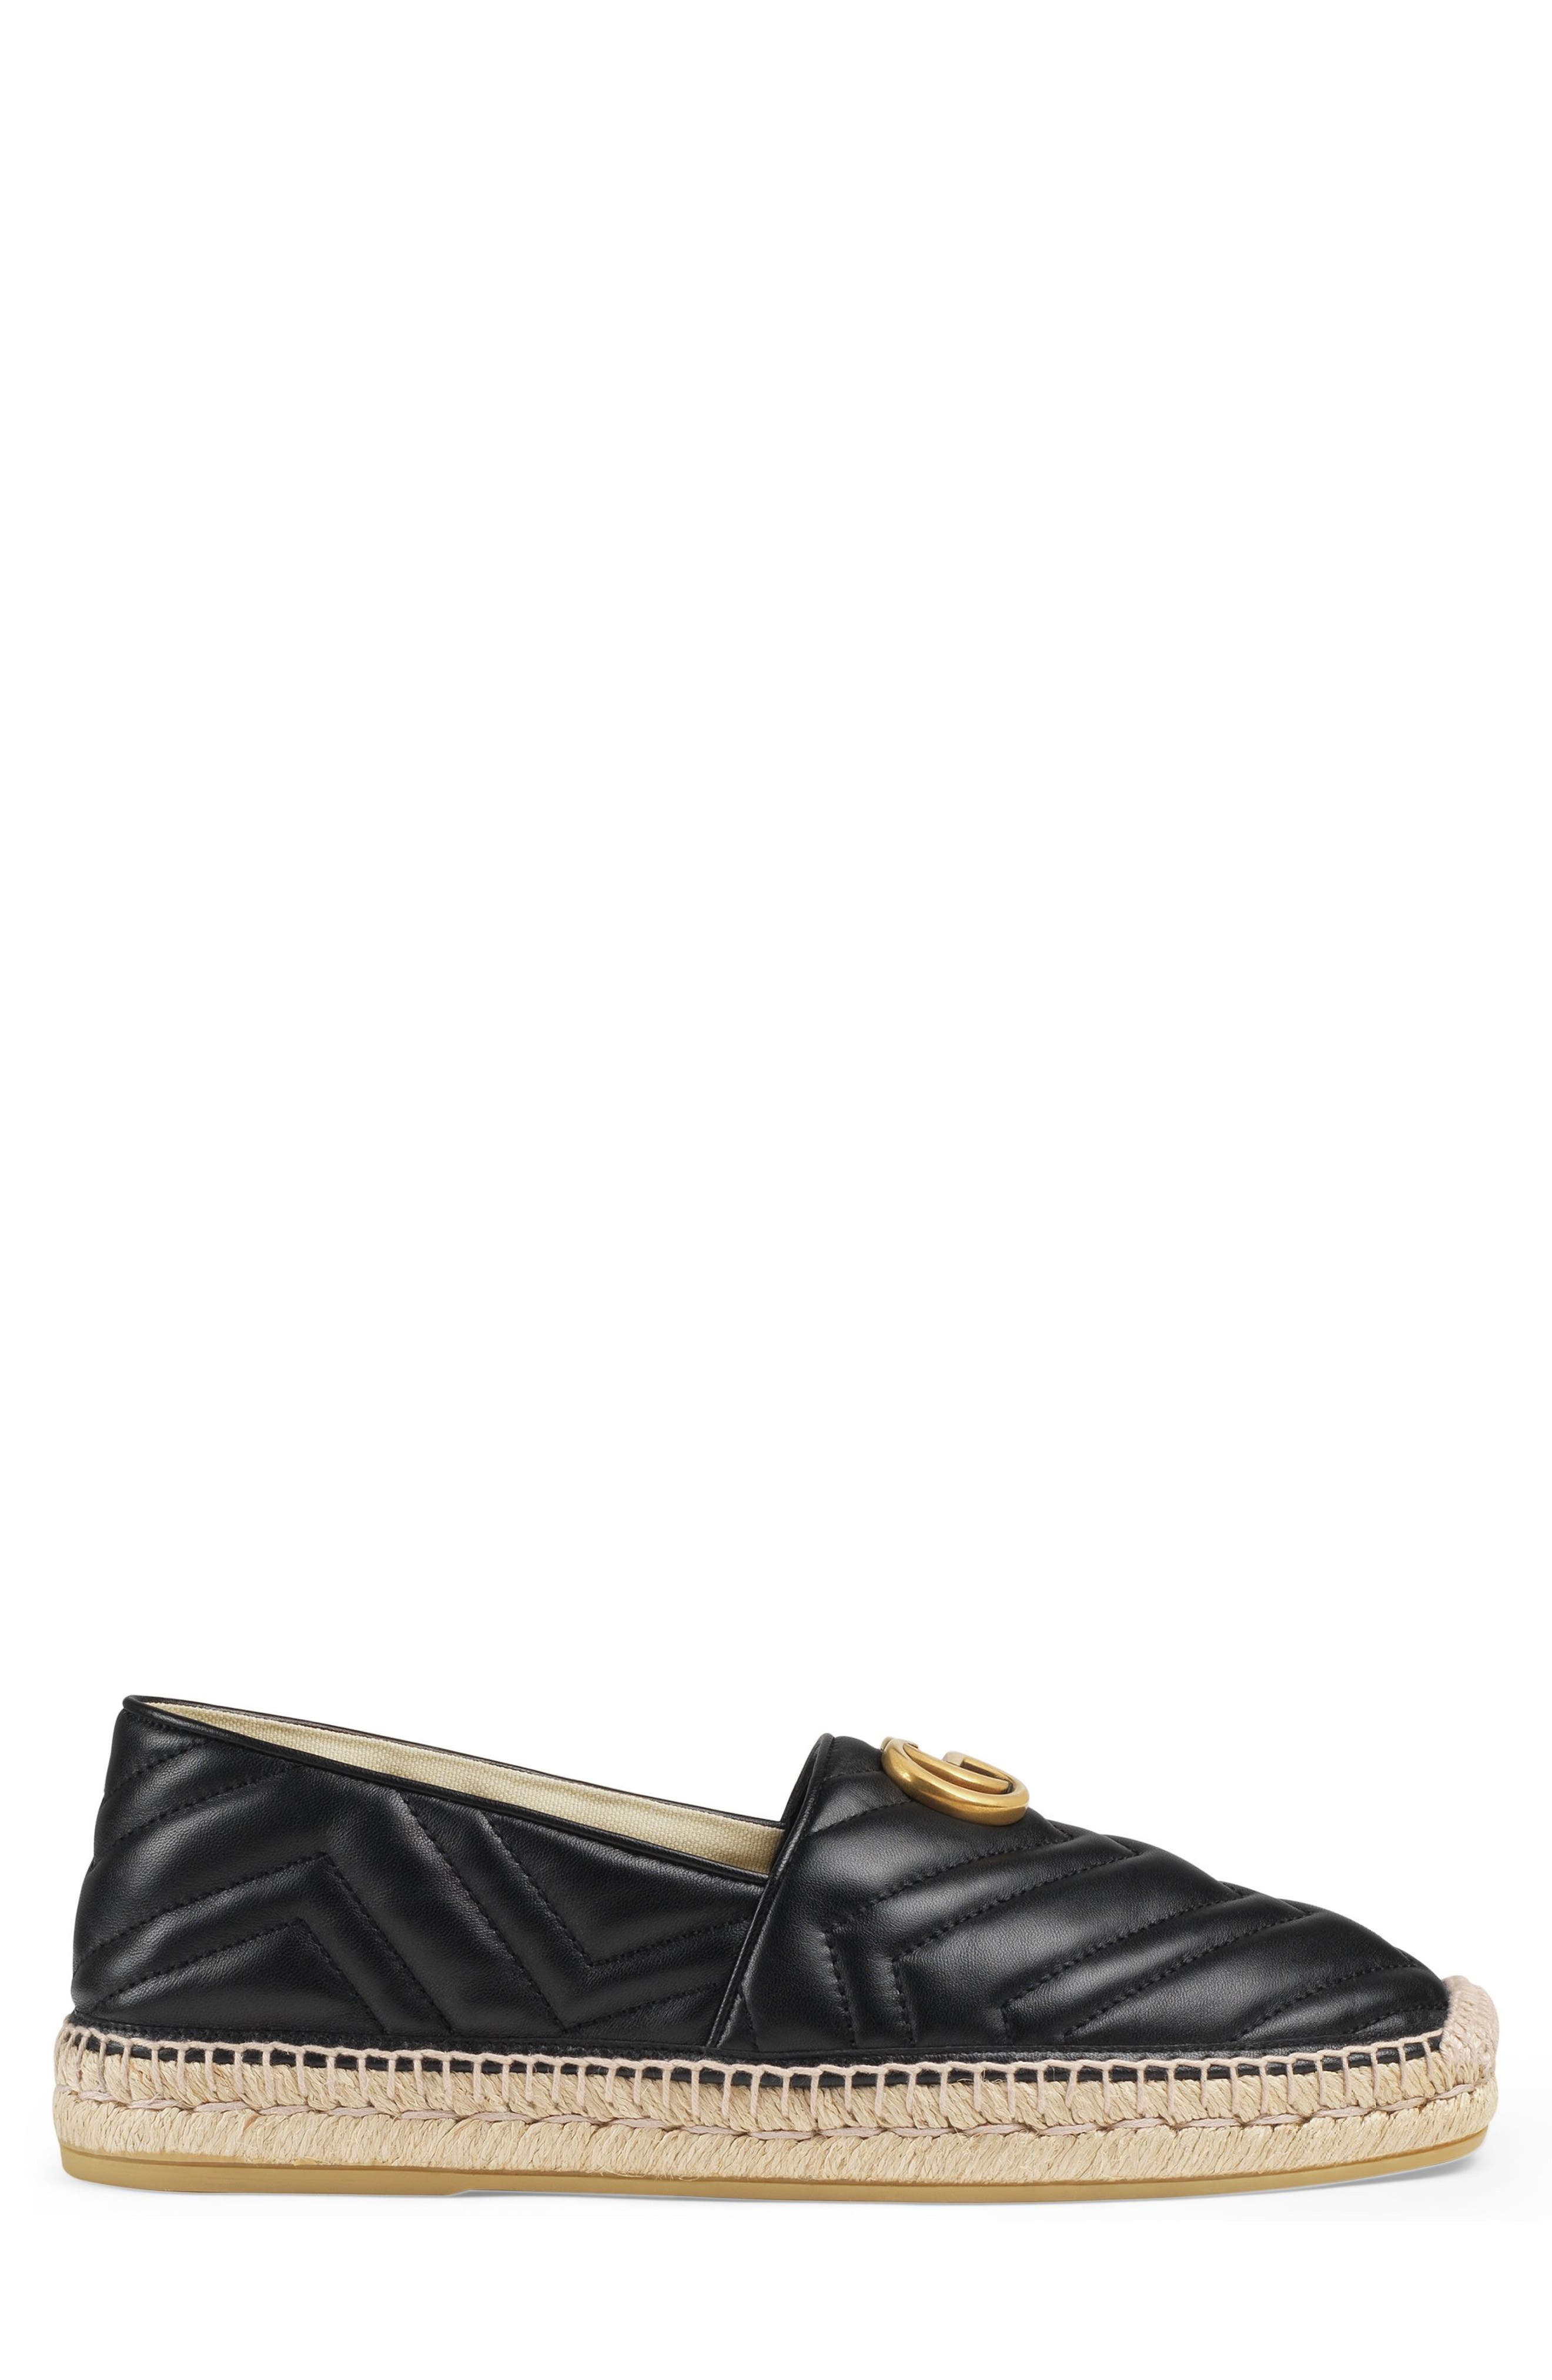 GUCCI, Alejandro Quilted Espadrille, Alternate thumbnail 2, color, NERO